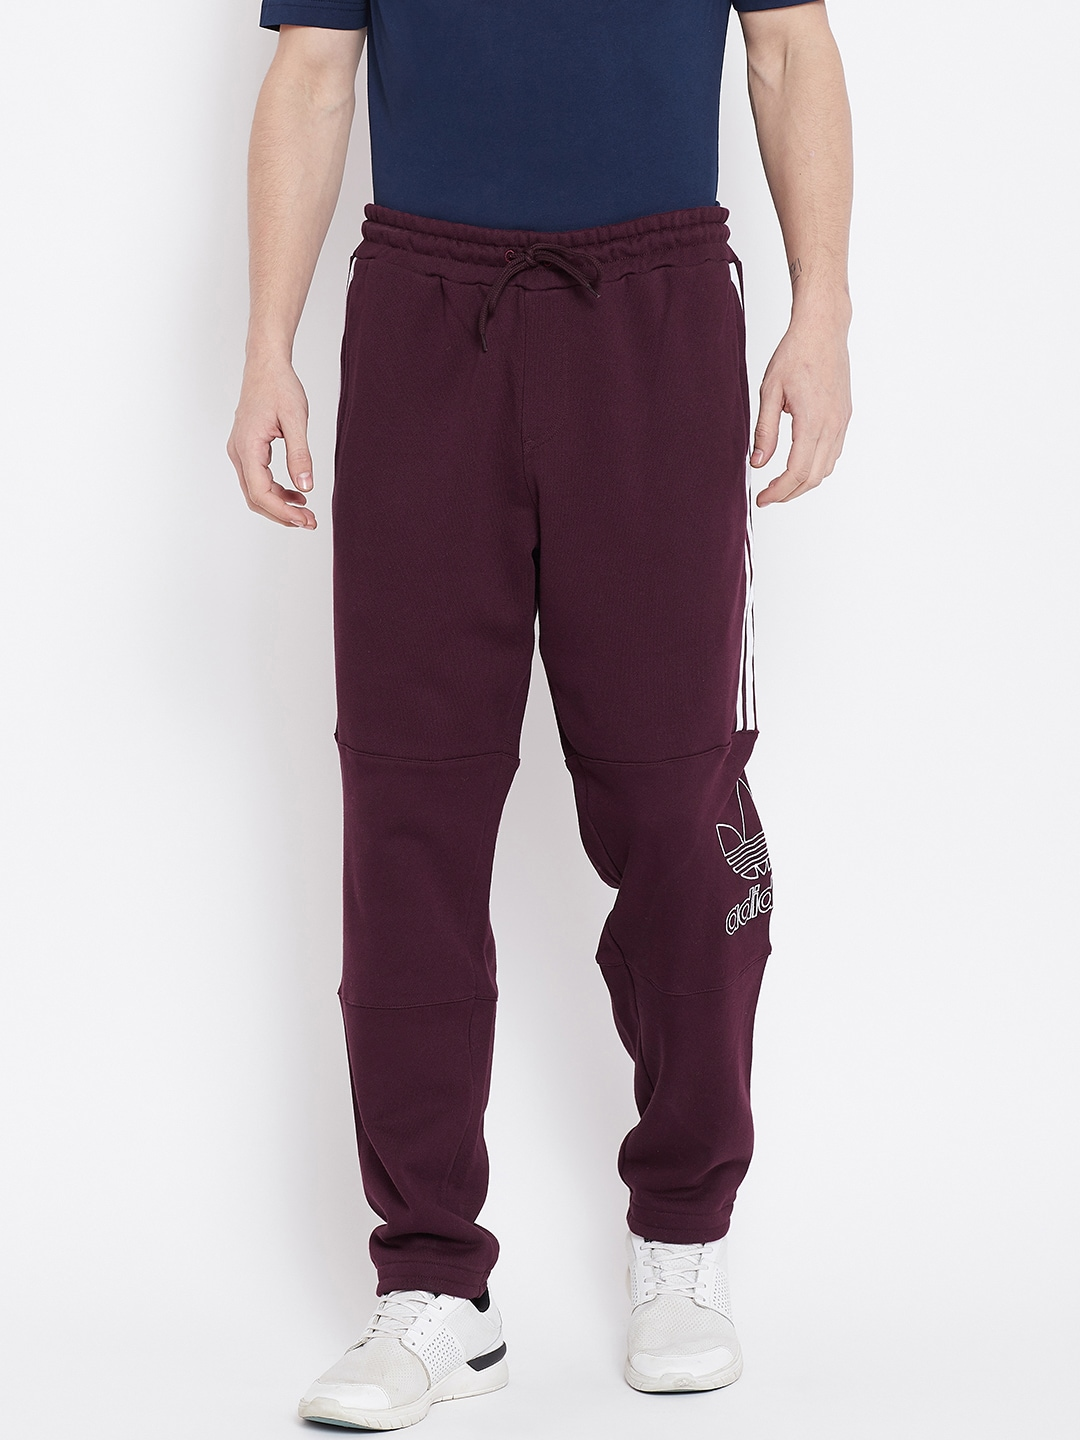 157e27cc6155 X 219 Adidas Backpacks Track Pants Pants - Buy X 219 Adidas Backpacks Track  Pants Pants online in India